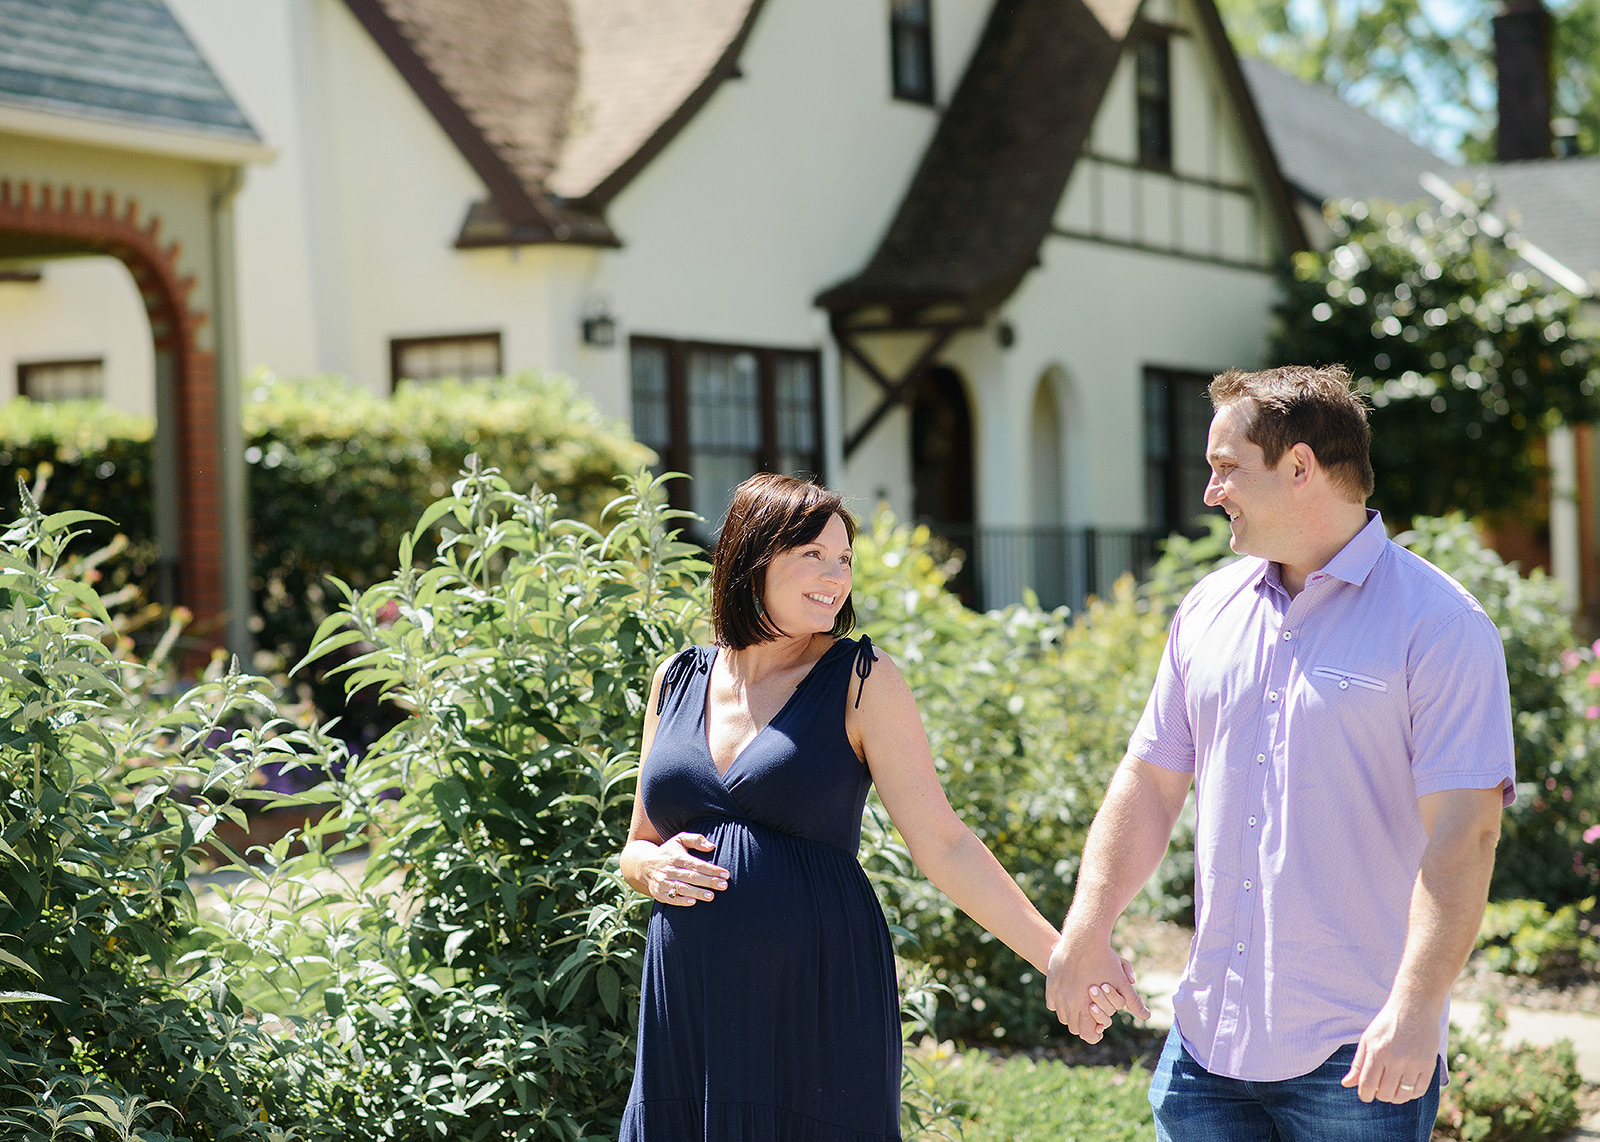 Pregnant couple holding hands and smiling in front of their home